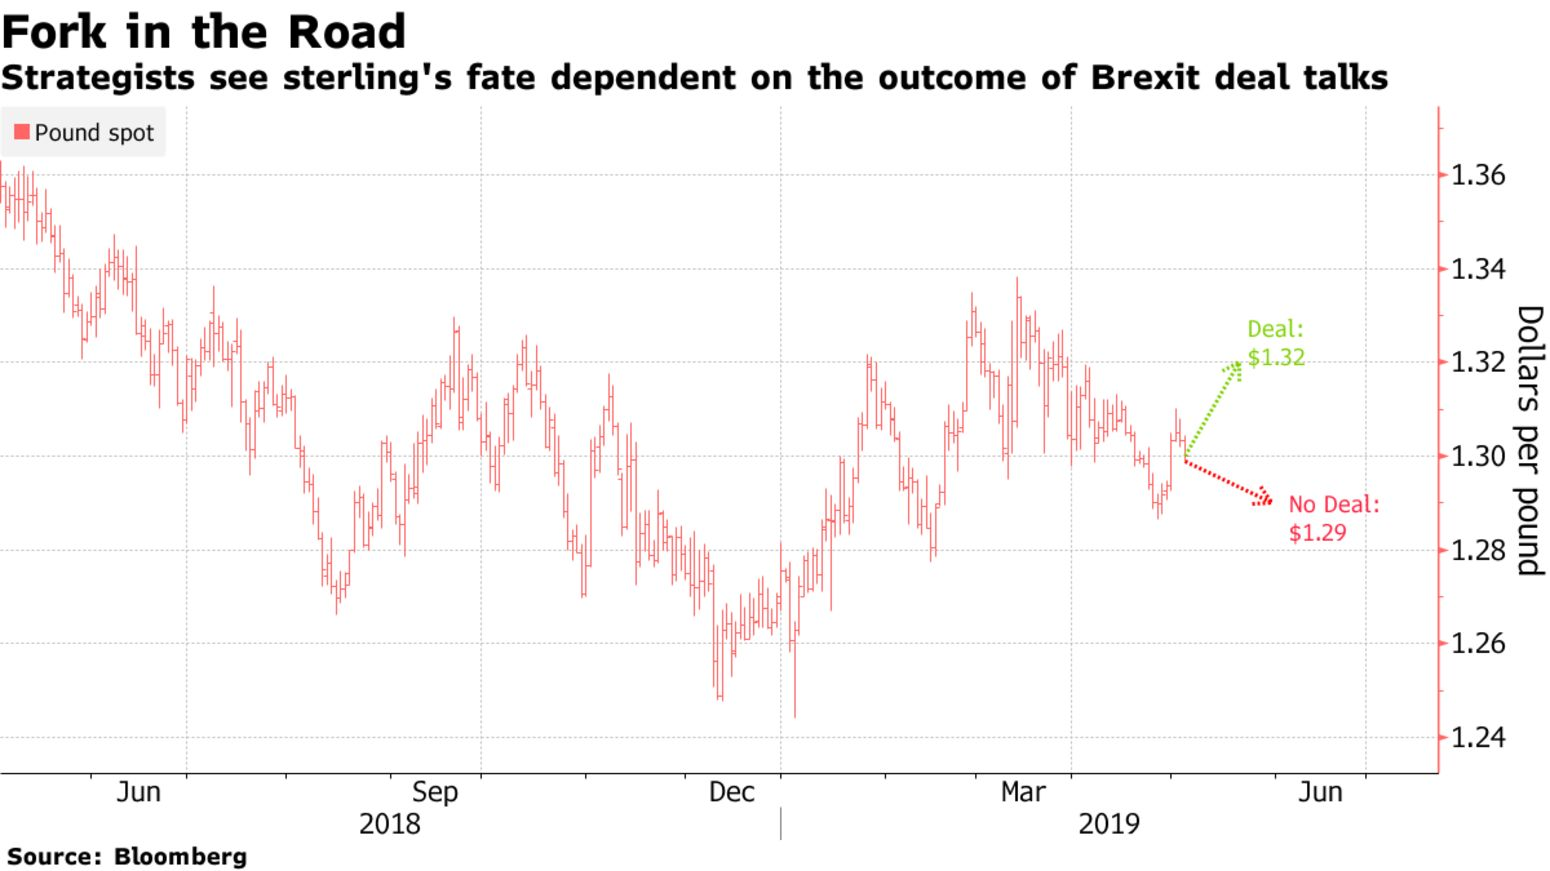 Strategists see sterling's fate dependent on the outcome of Brexit deal talks